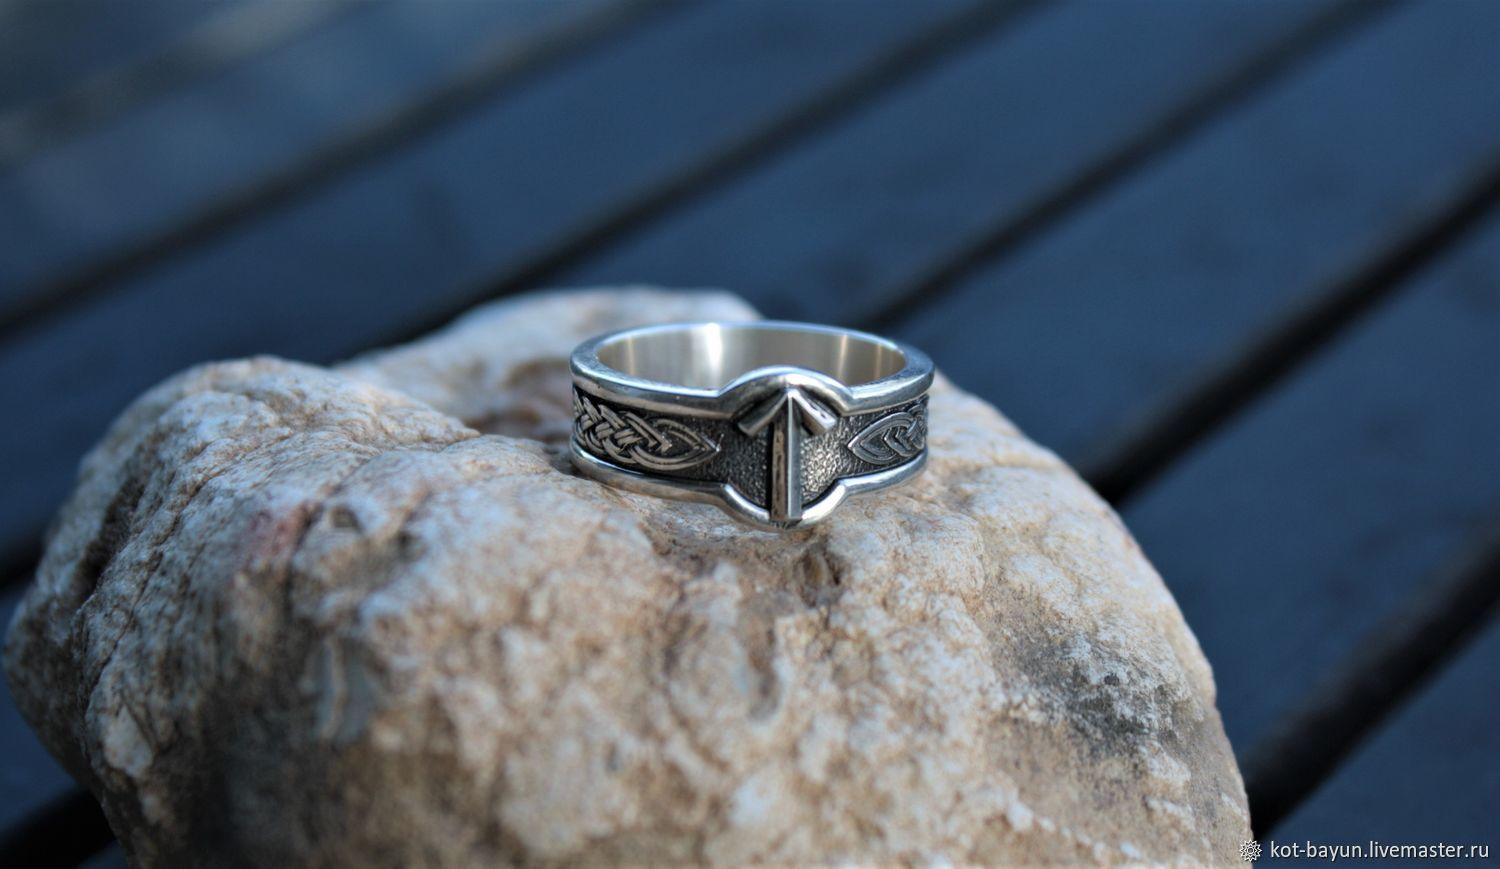 Ring amulet with rune. 925 sterling silver, Rings, Moscow,  Фото №1